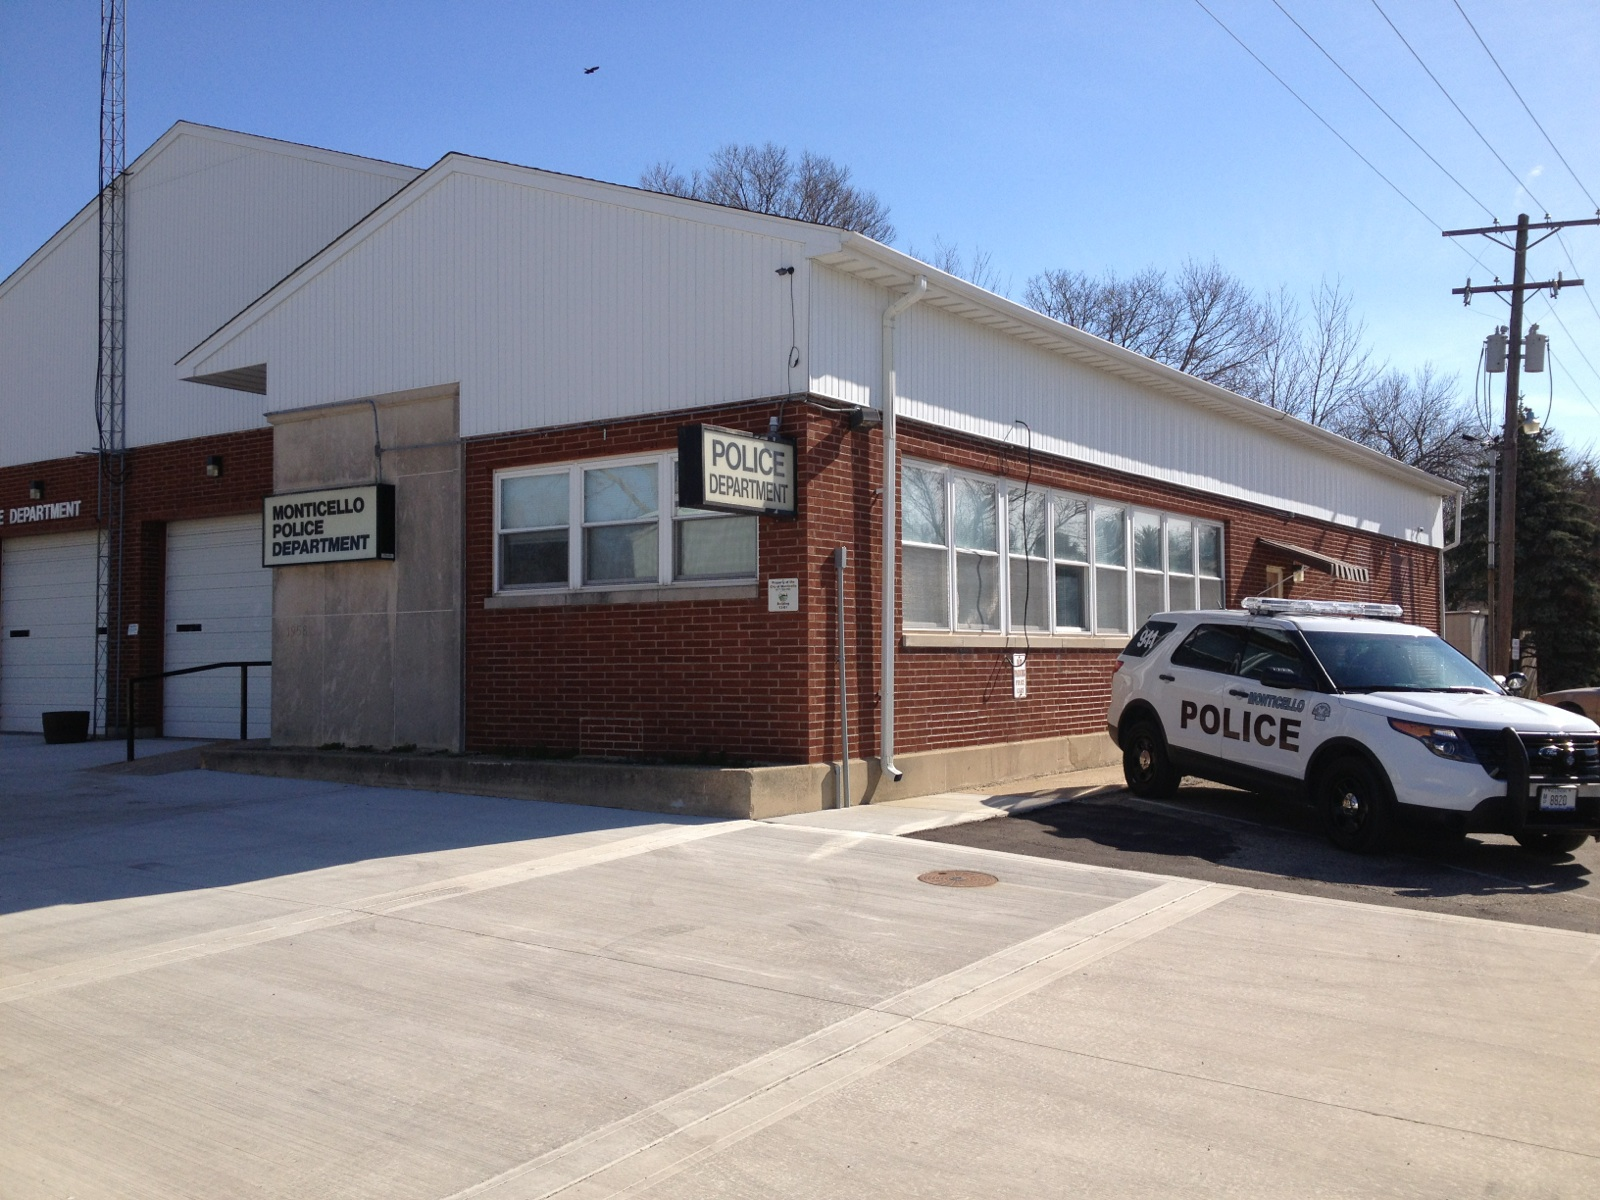 Monticello Police Department